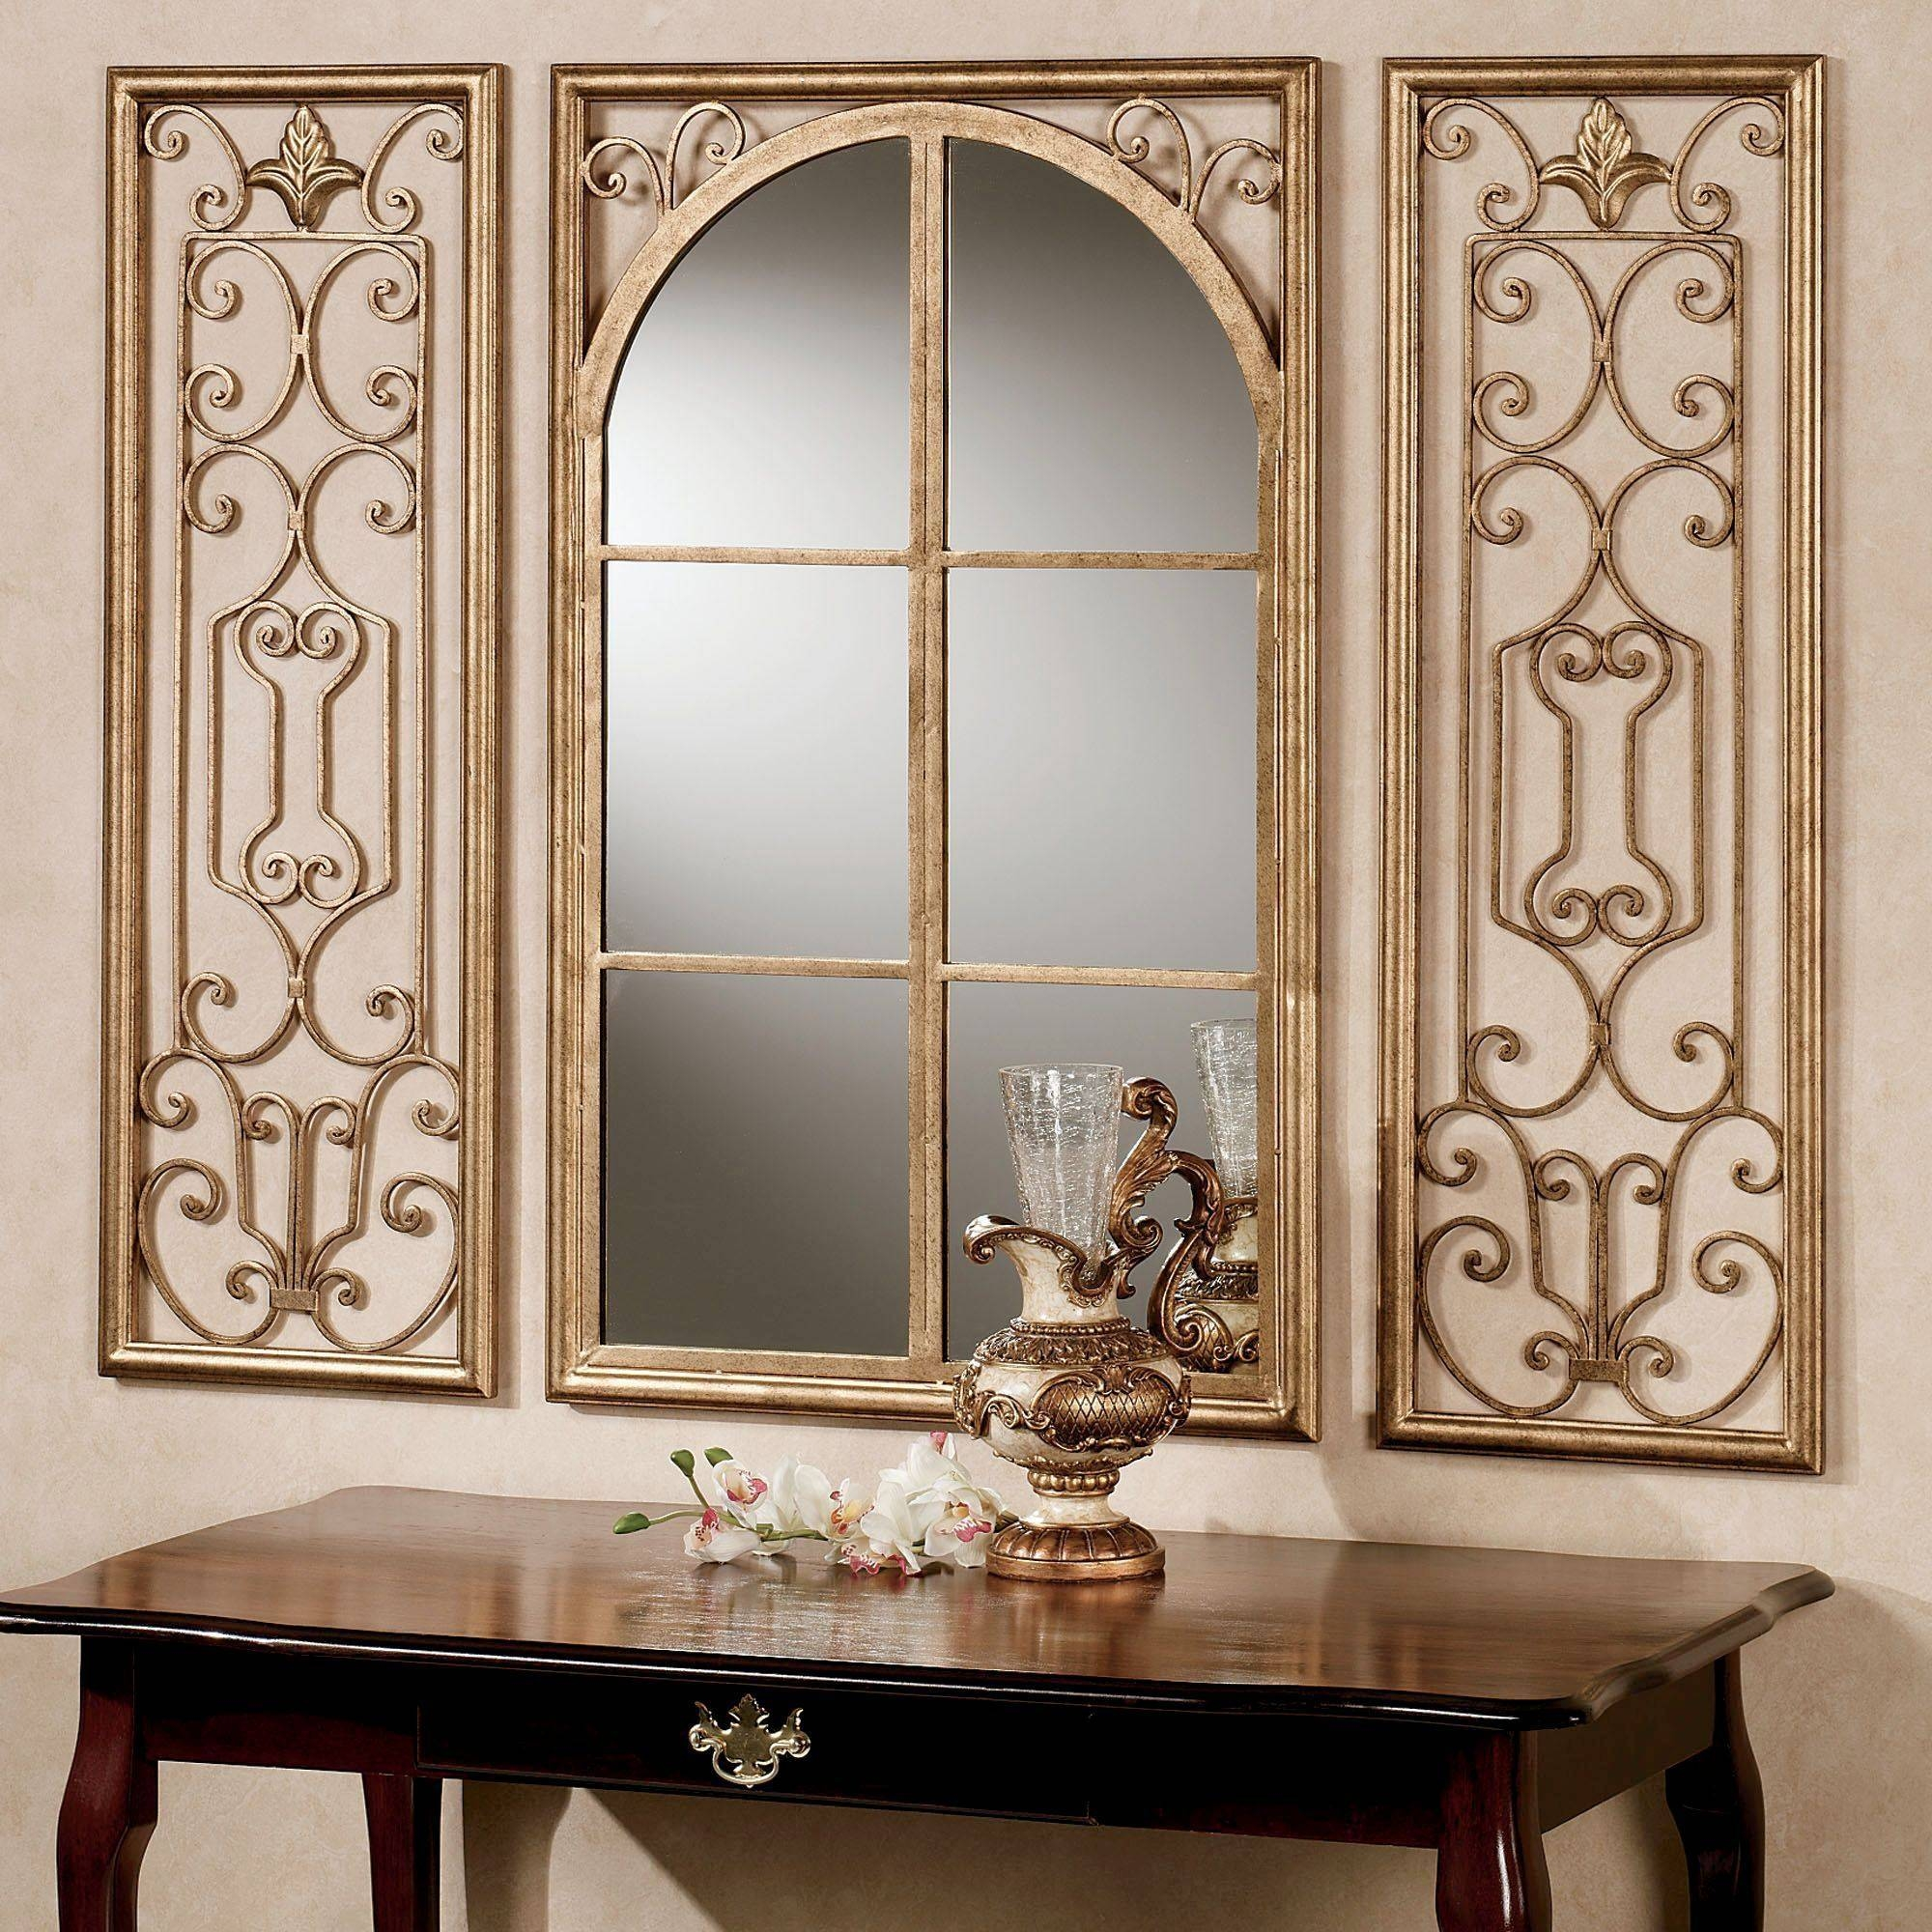 Provence Antique Gold Finish Wall Mirror Set with Antique Wall Mirrors (Image 12 of 15)